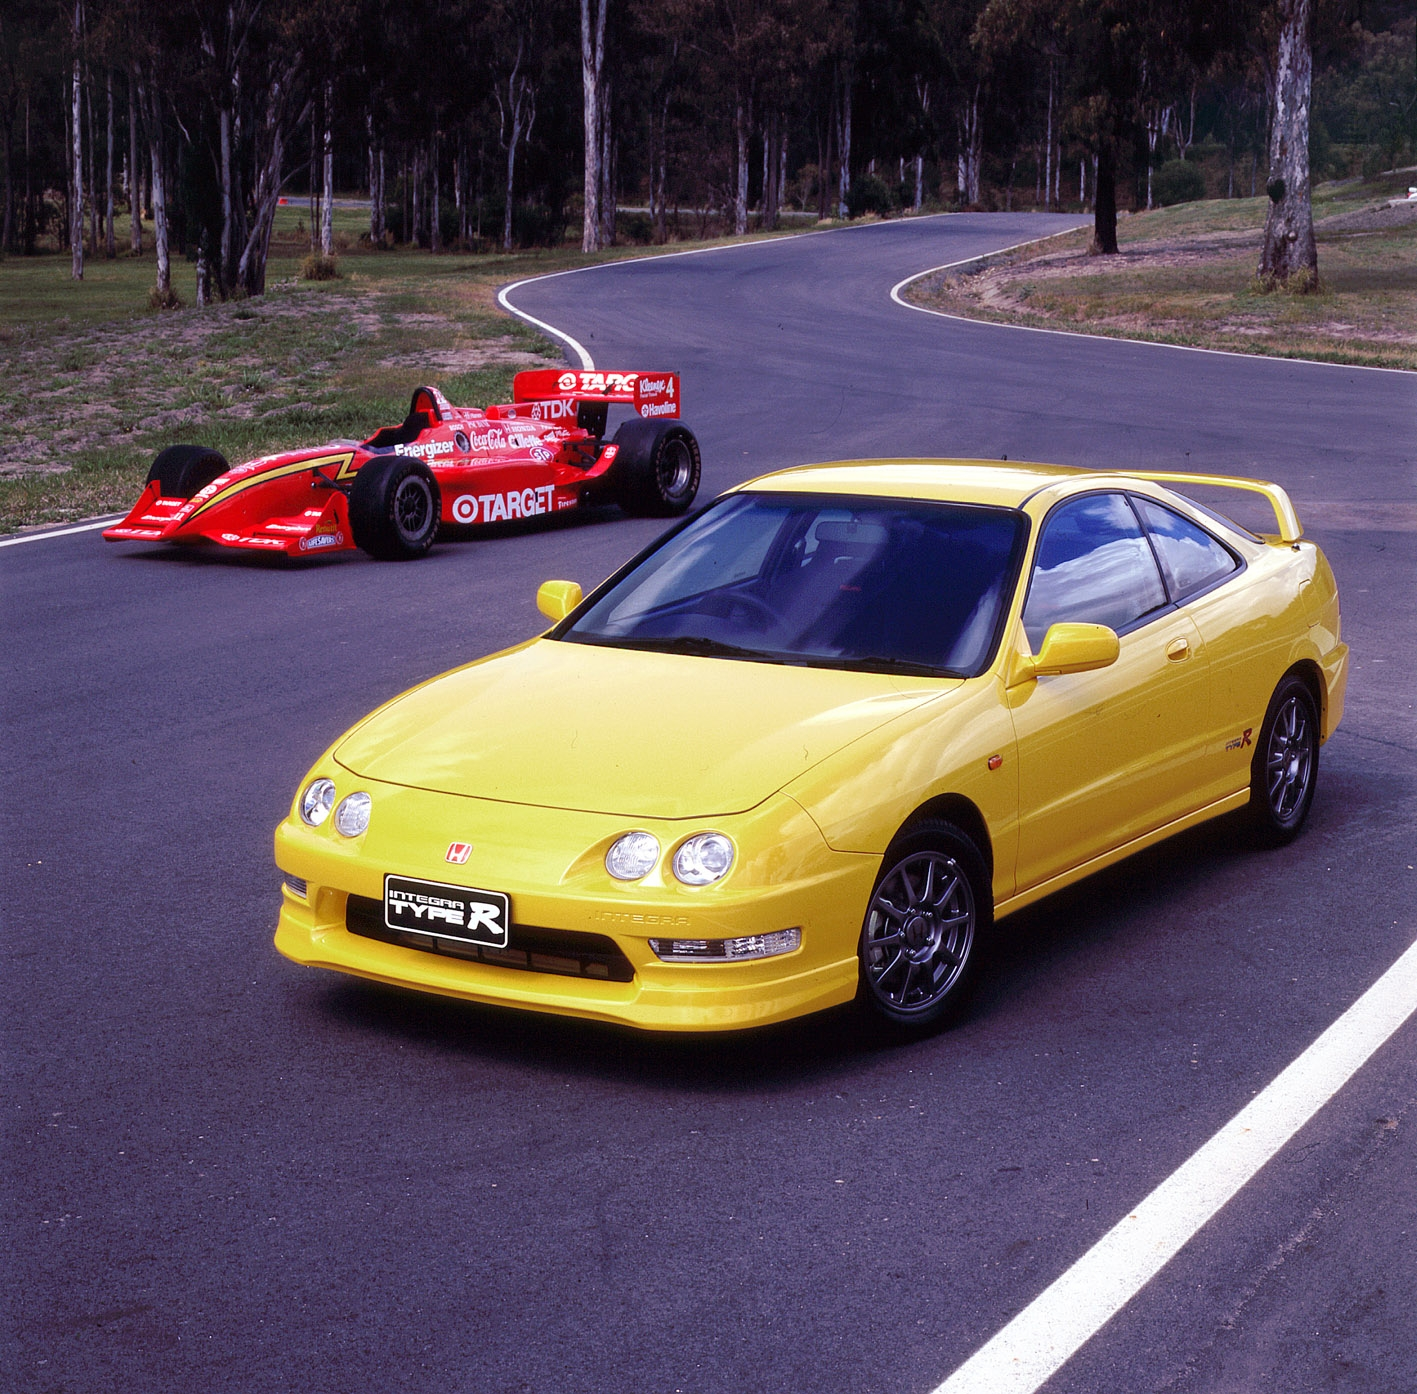 First Molding Frp Vented Hood Civic Eg Rcgxicb as well S L together with Maxresdefault also Dsc as well Civic Type R Coupe. on jdm honda integra type r